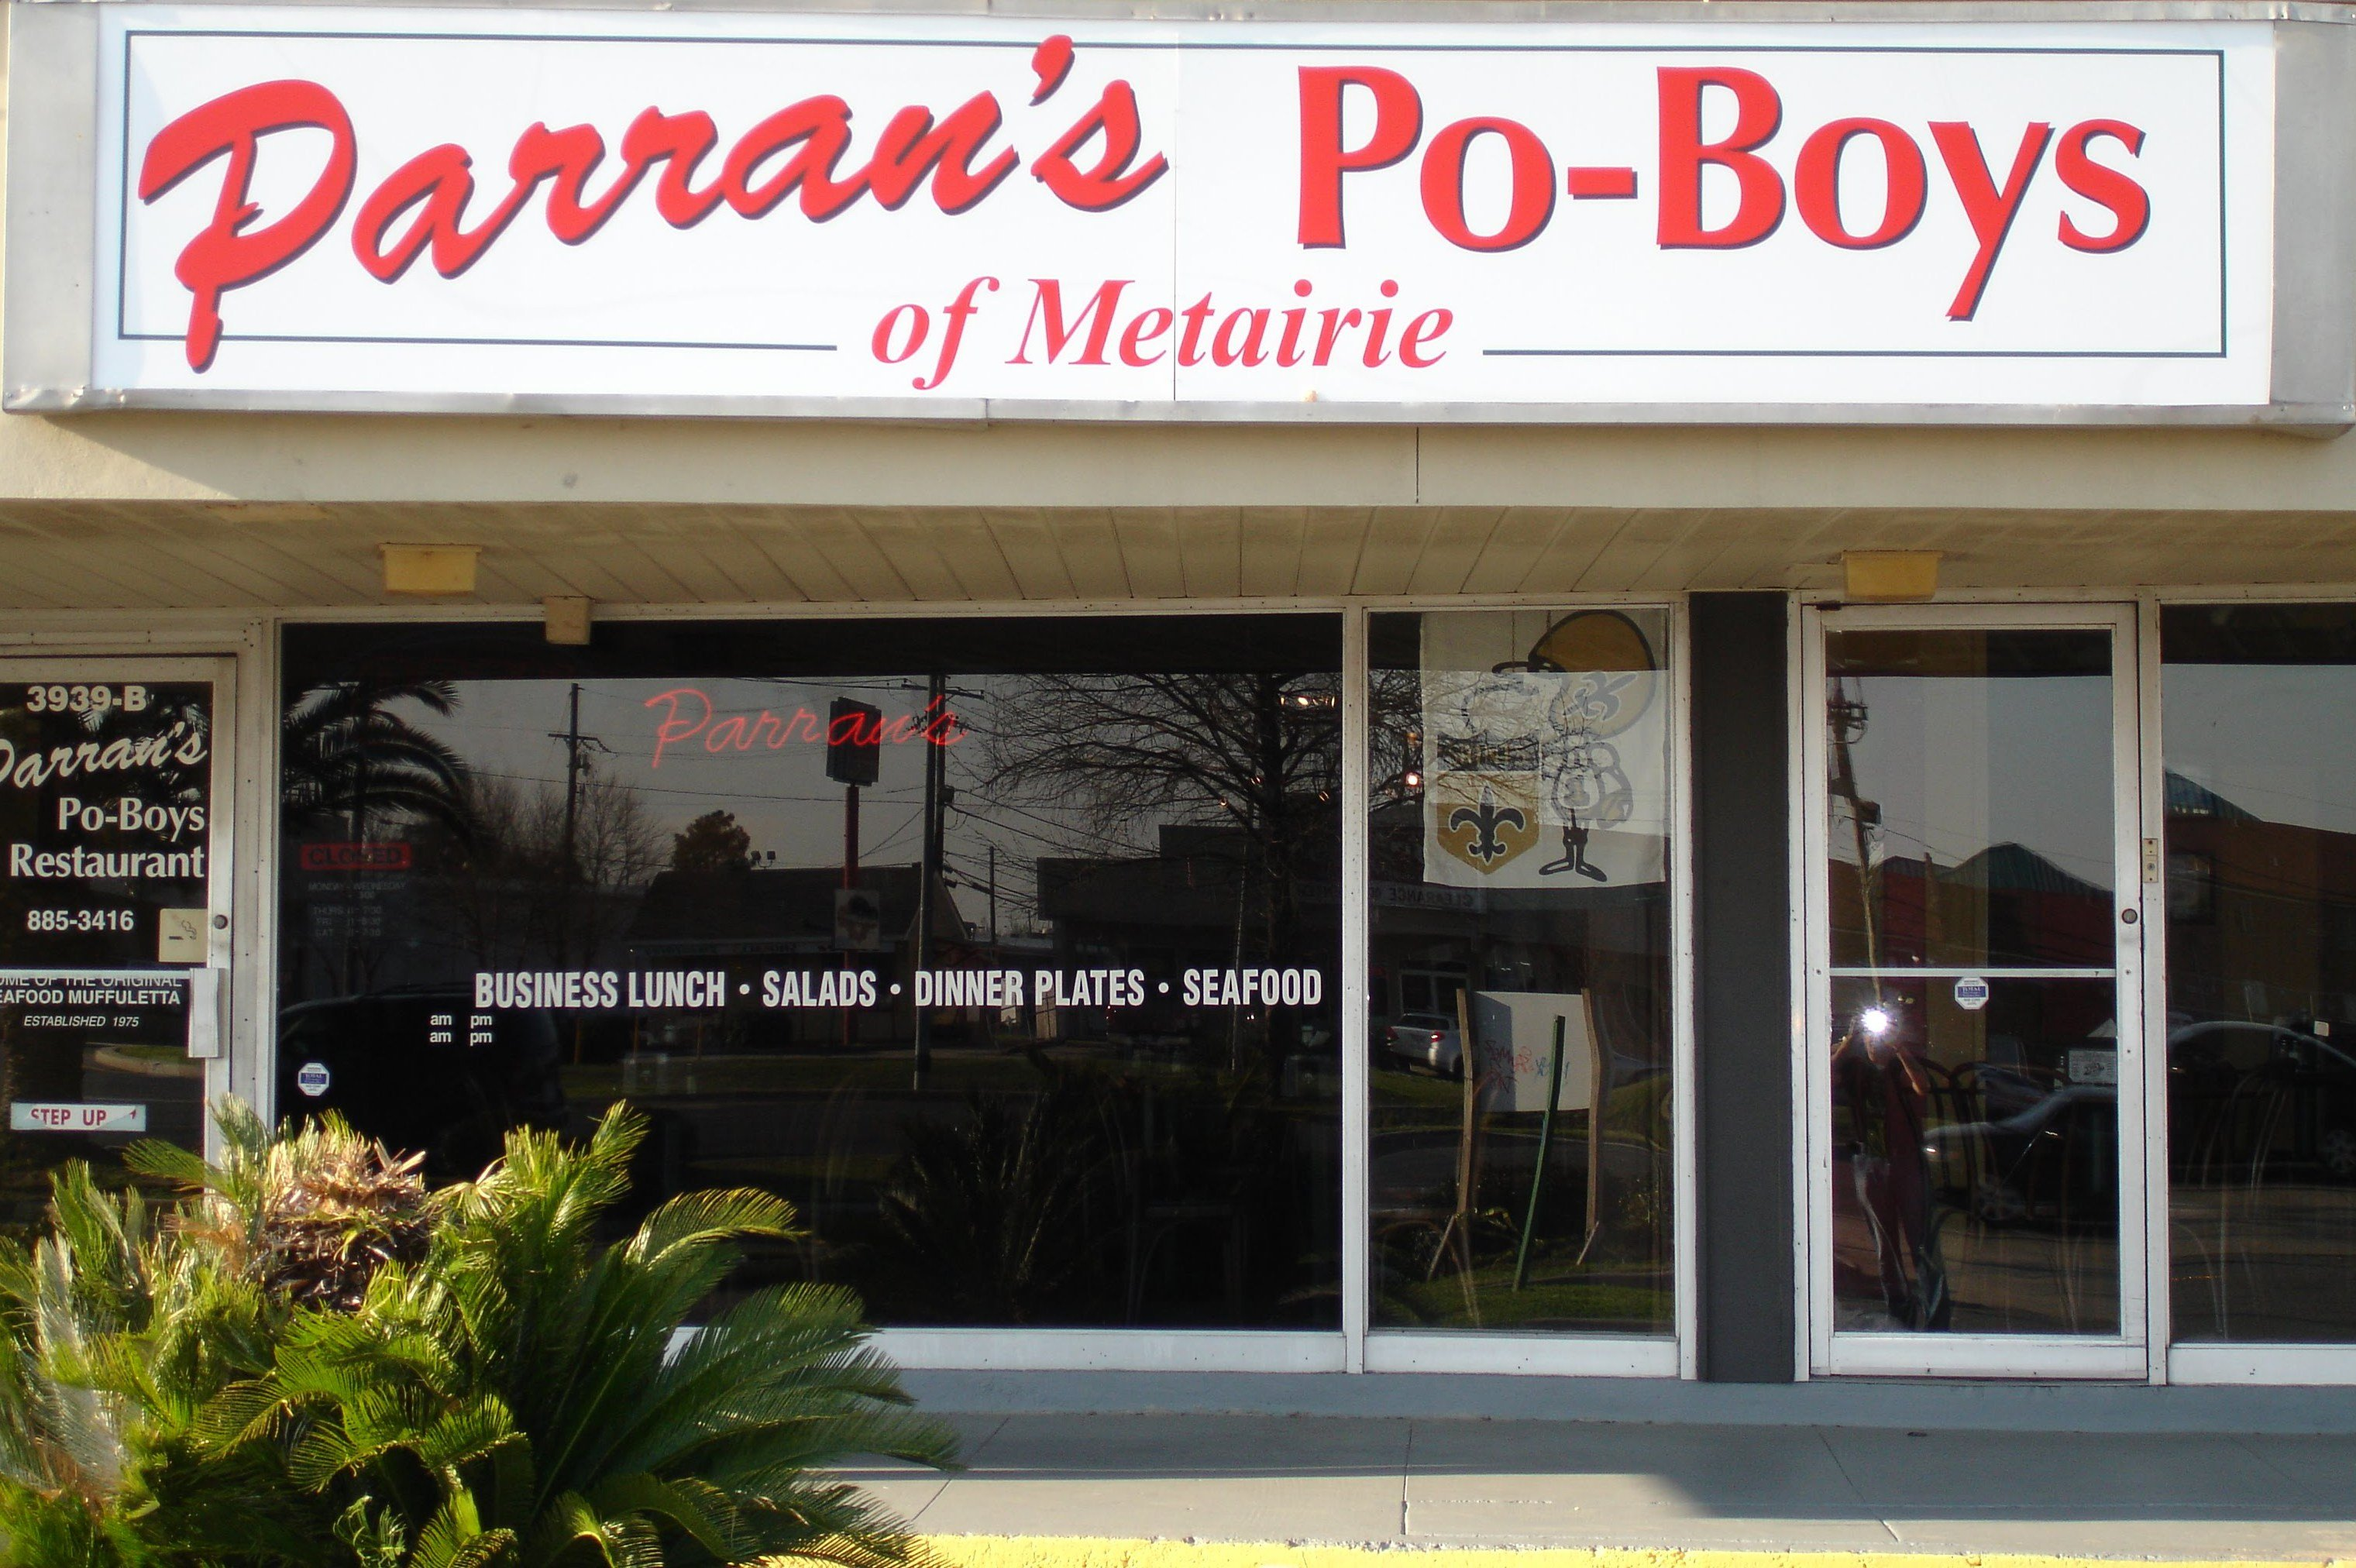 https://itunes.apple.com/us/app/parrans-po-boys-restaurant/id775350195?mt=8